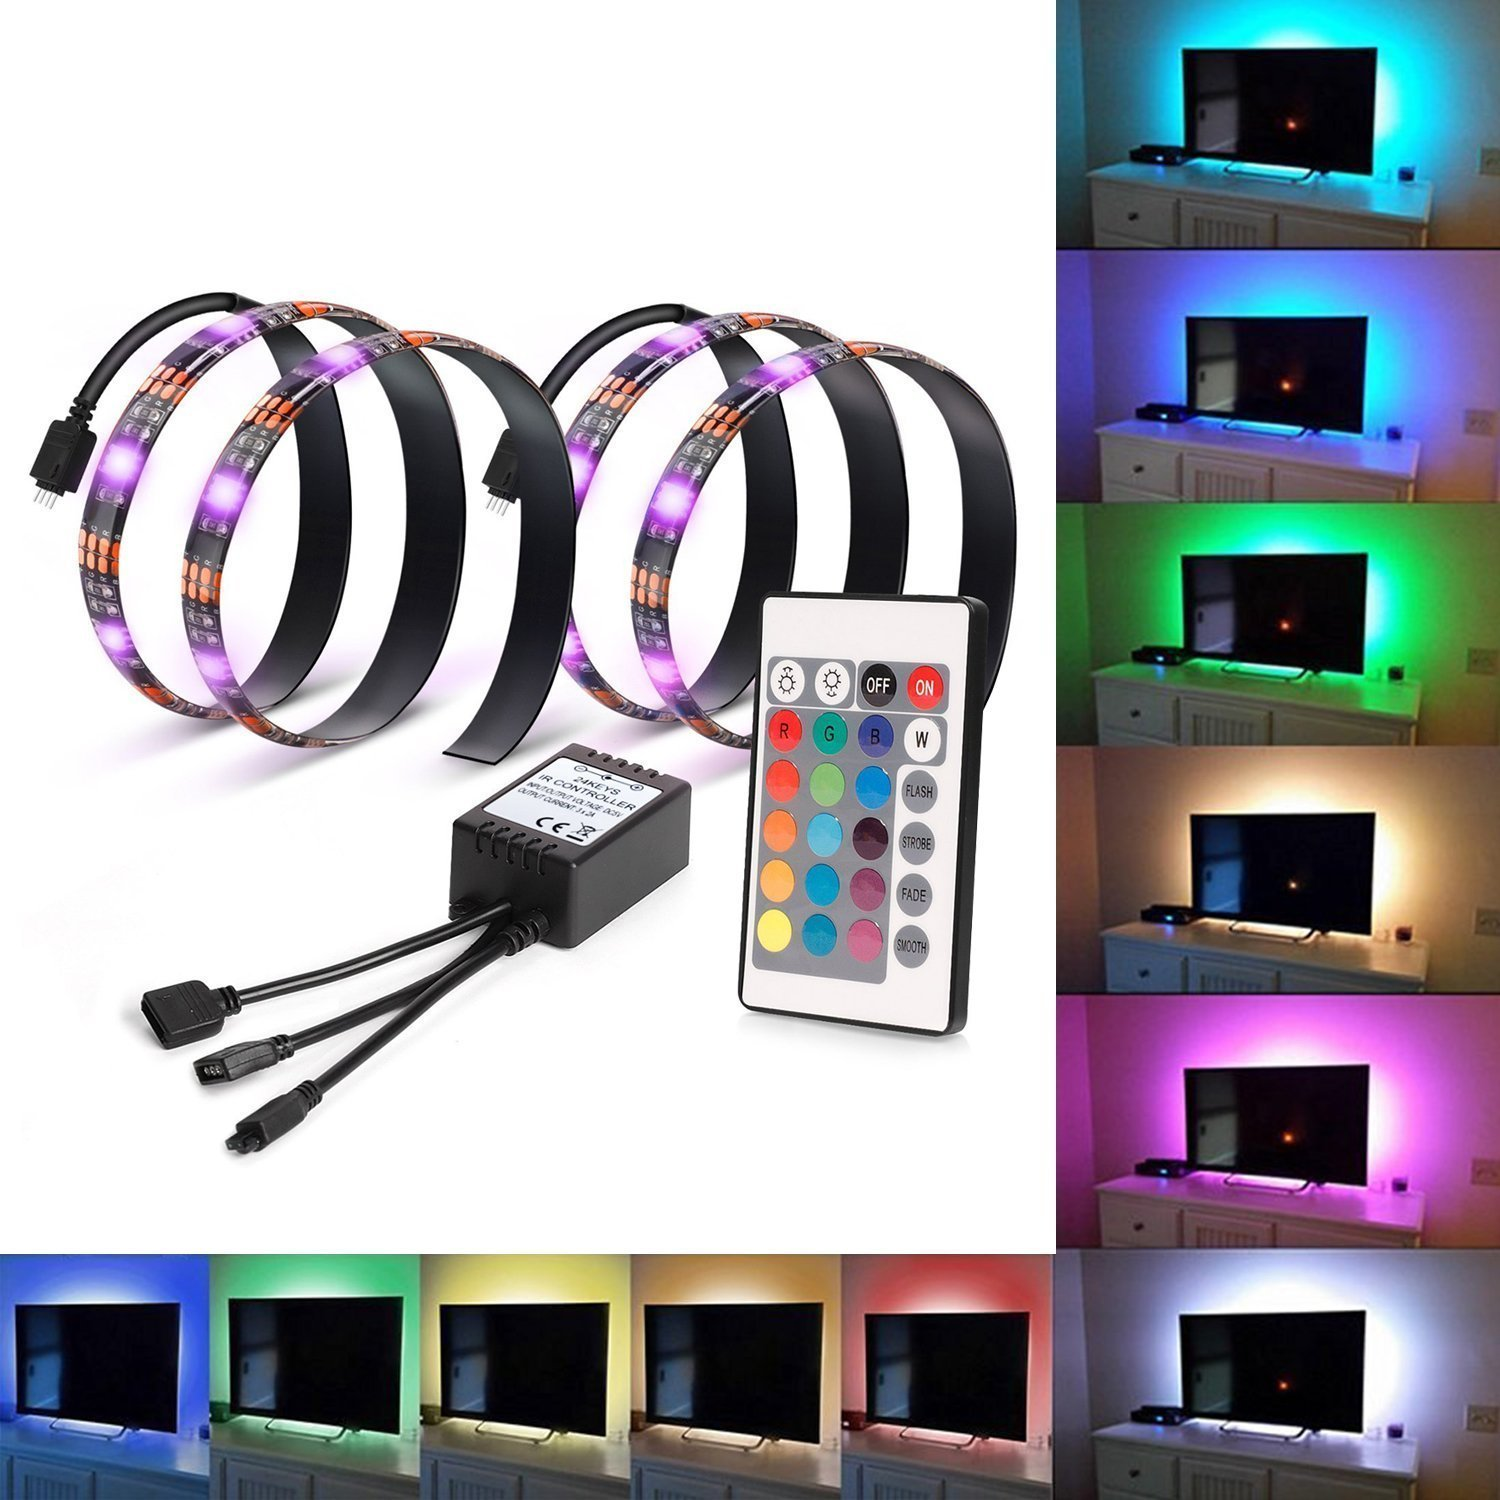 Kohree TV Backlight Bias HDTV USB Powered 2 RGB Multi Color Led Strip with Remote Control Home Theater Accent Lighting Kits (Reduce Eye Fatigue and Increase Image Clarity), Set of 2 Set of 2 Strips